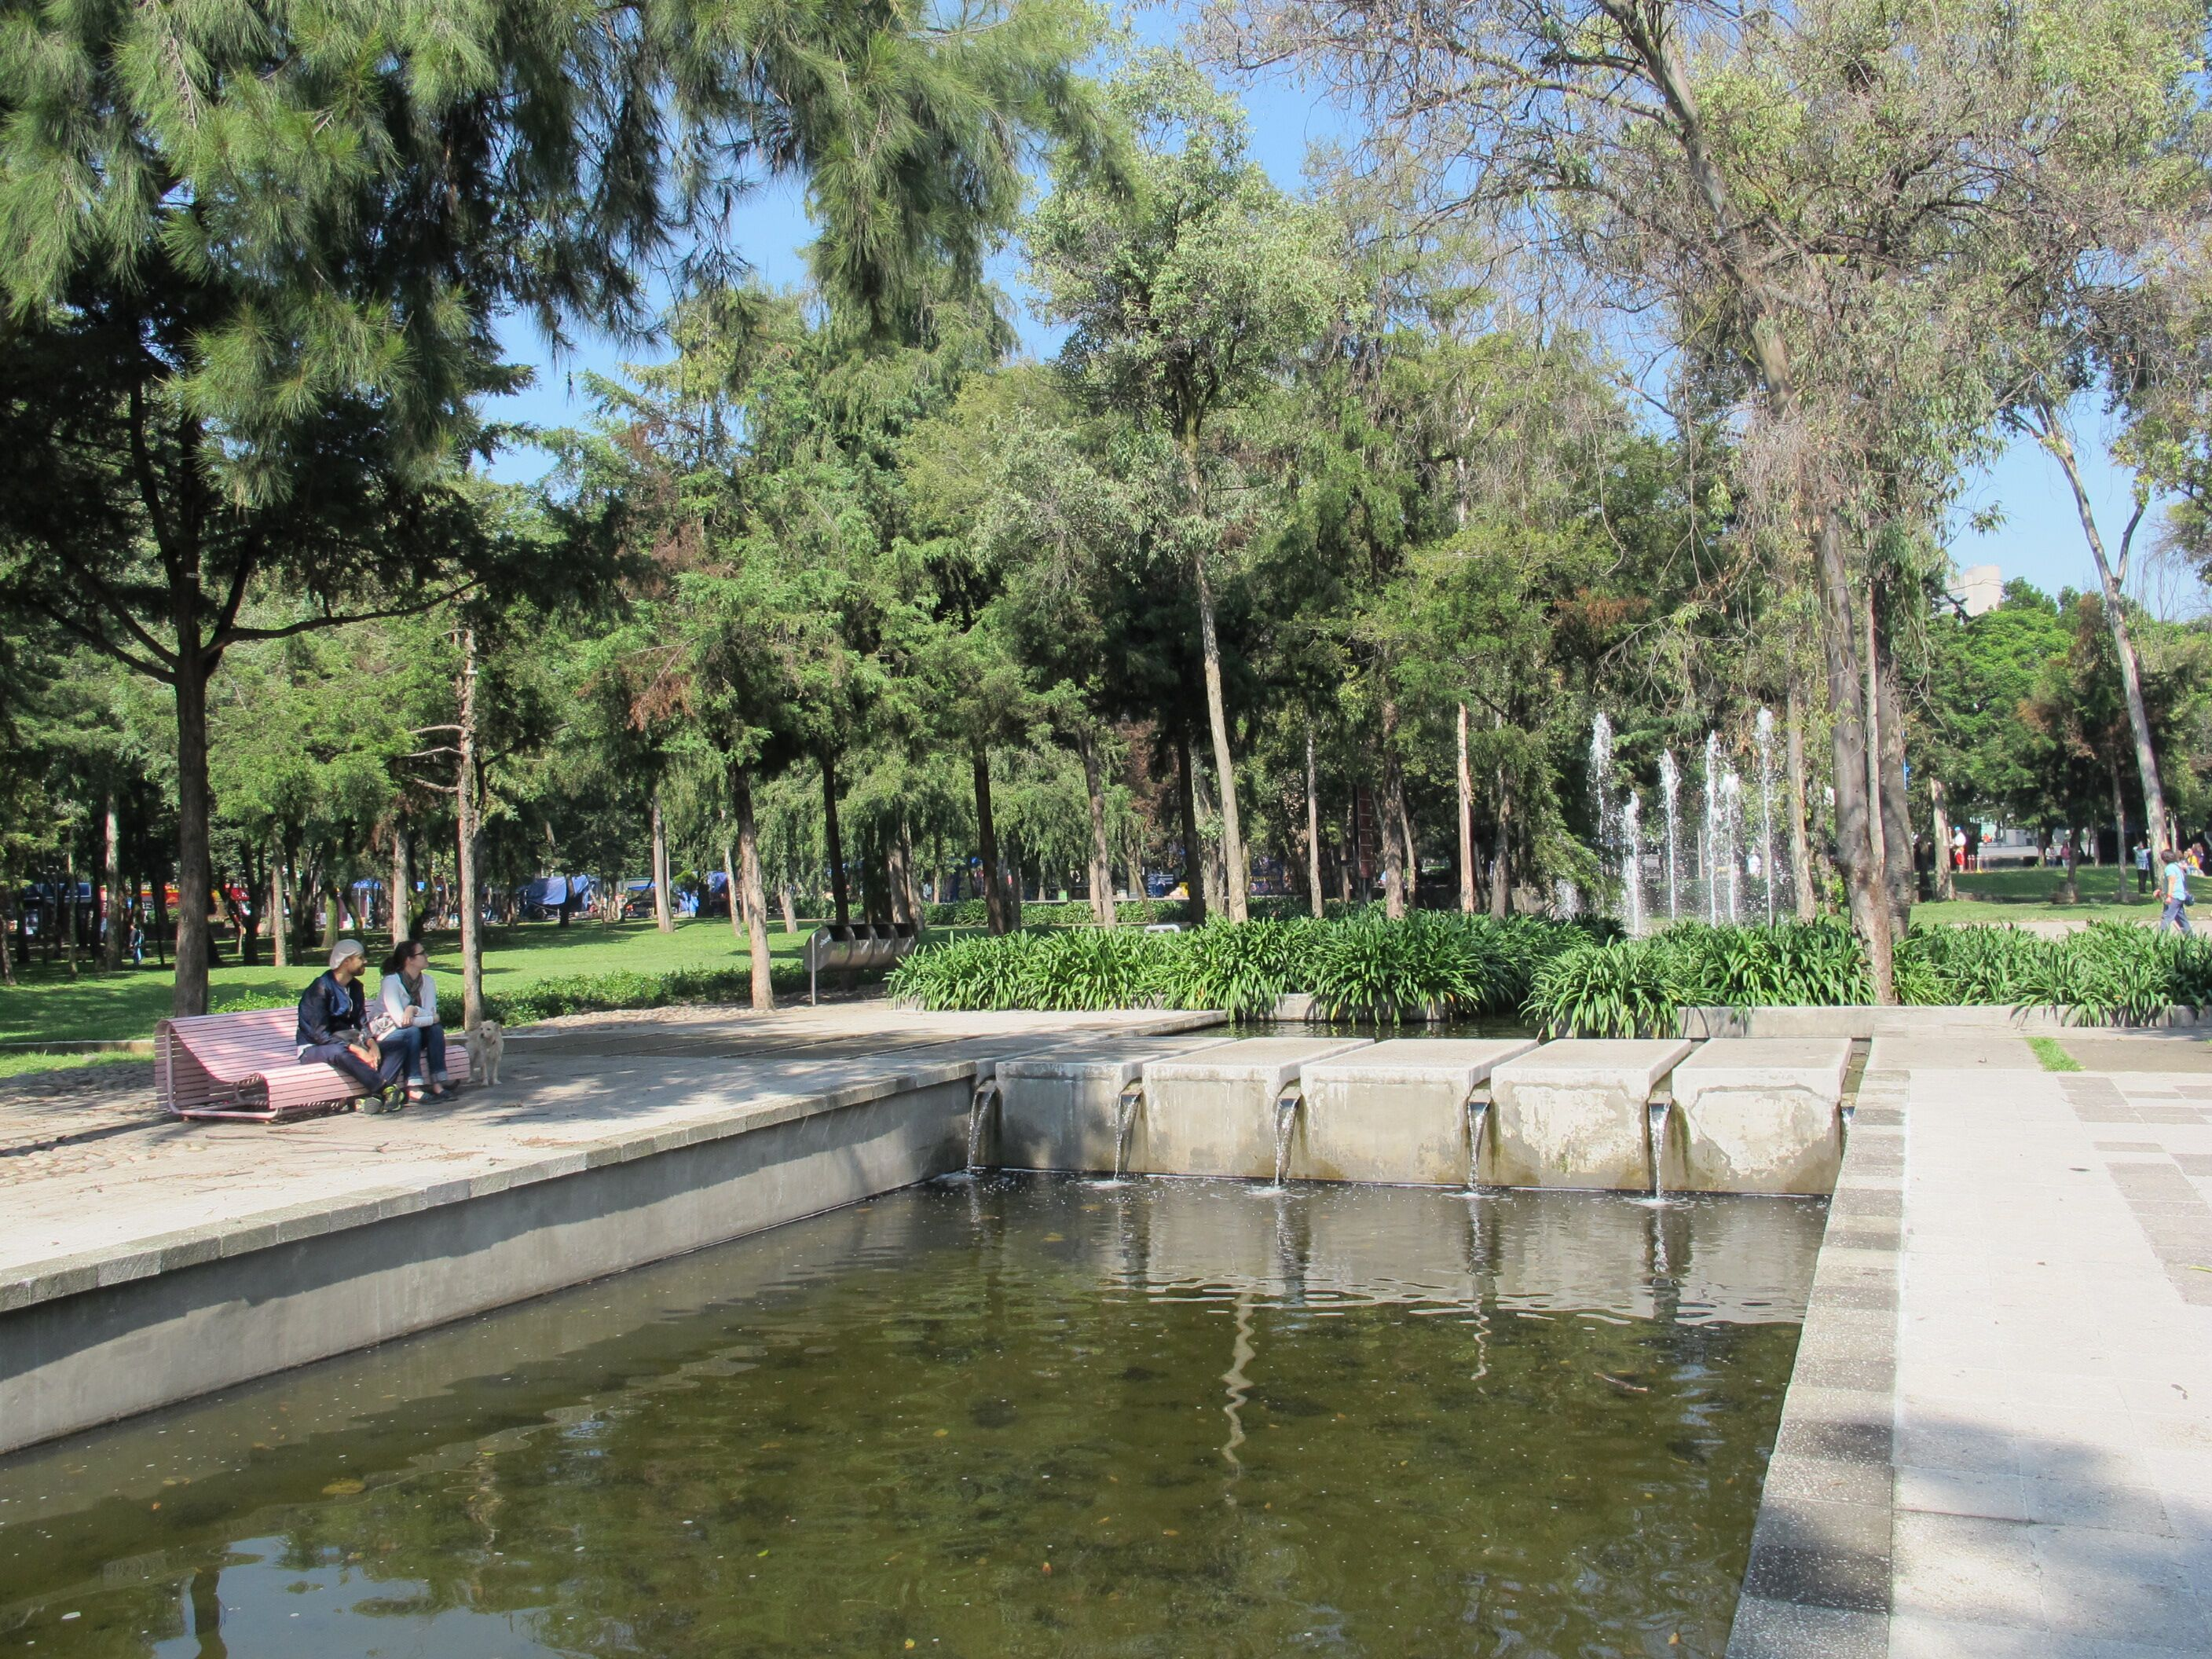 An image of one of Polanco's many parks.